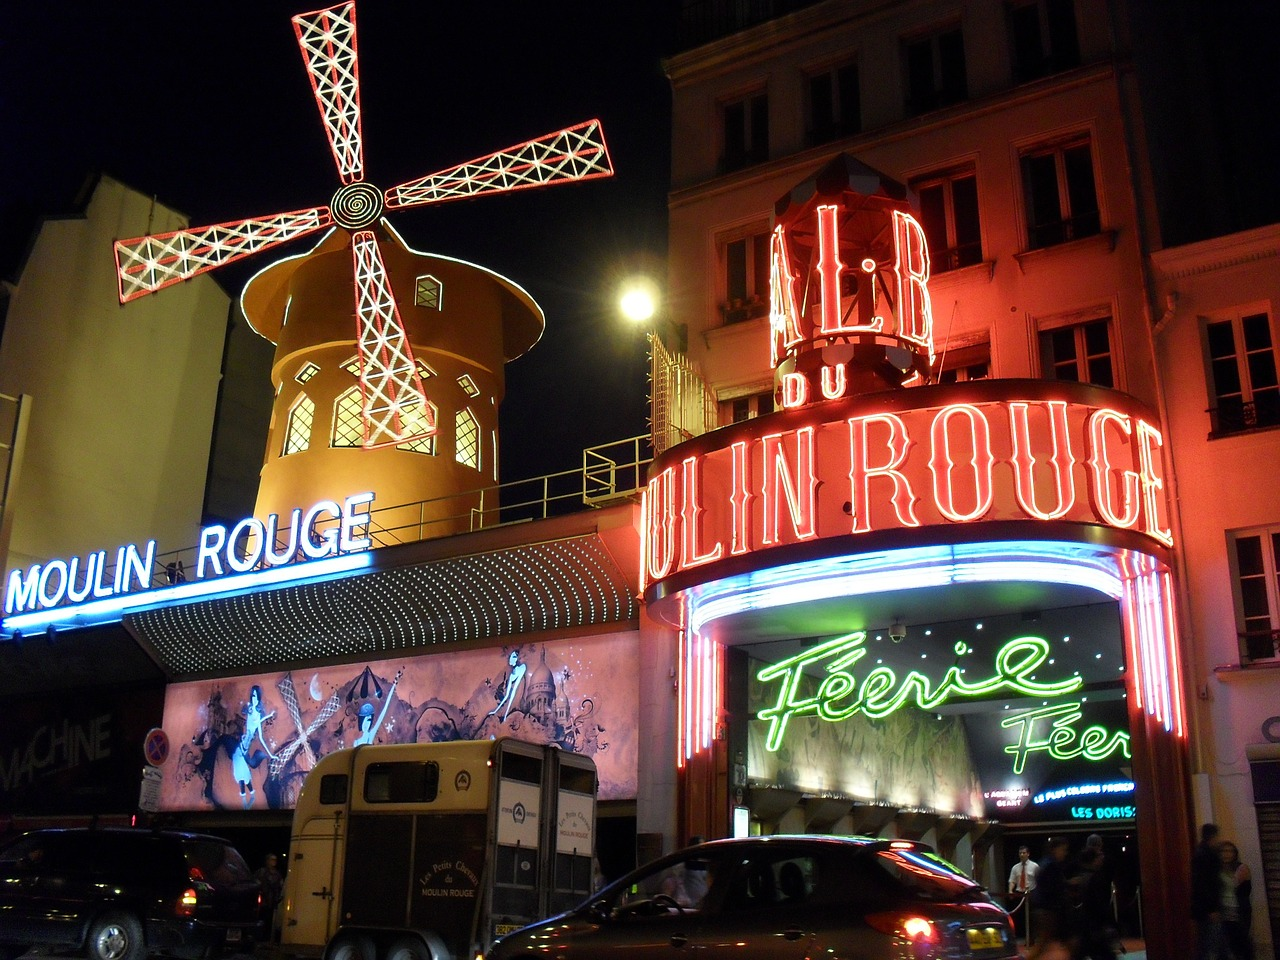 moulin rouge paris france free photo